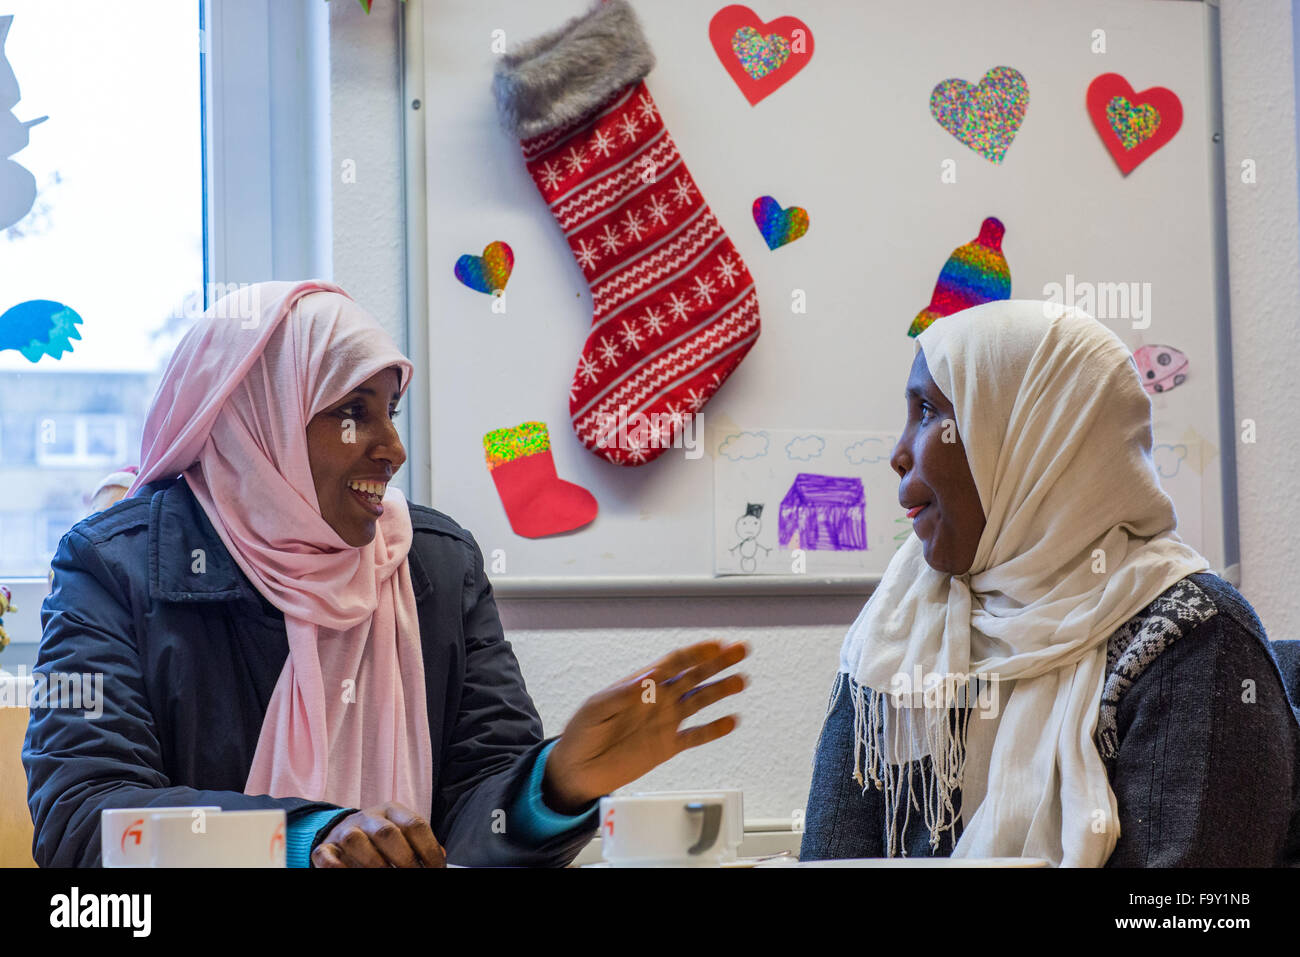 Schwerin, Germany. 14th Dec, 2015. Two refugee women from Somalia attend the Christmas party for refugee families - Stock Image